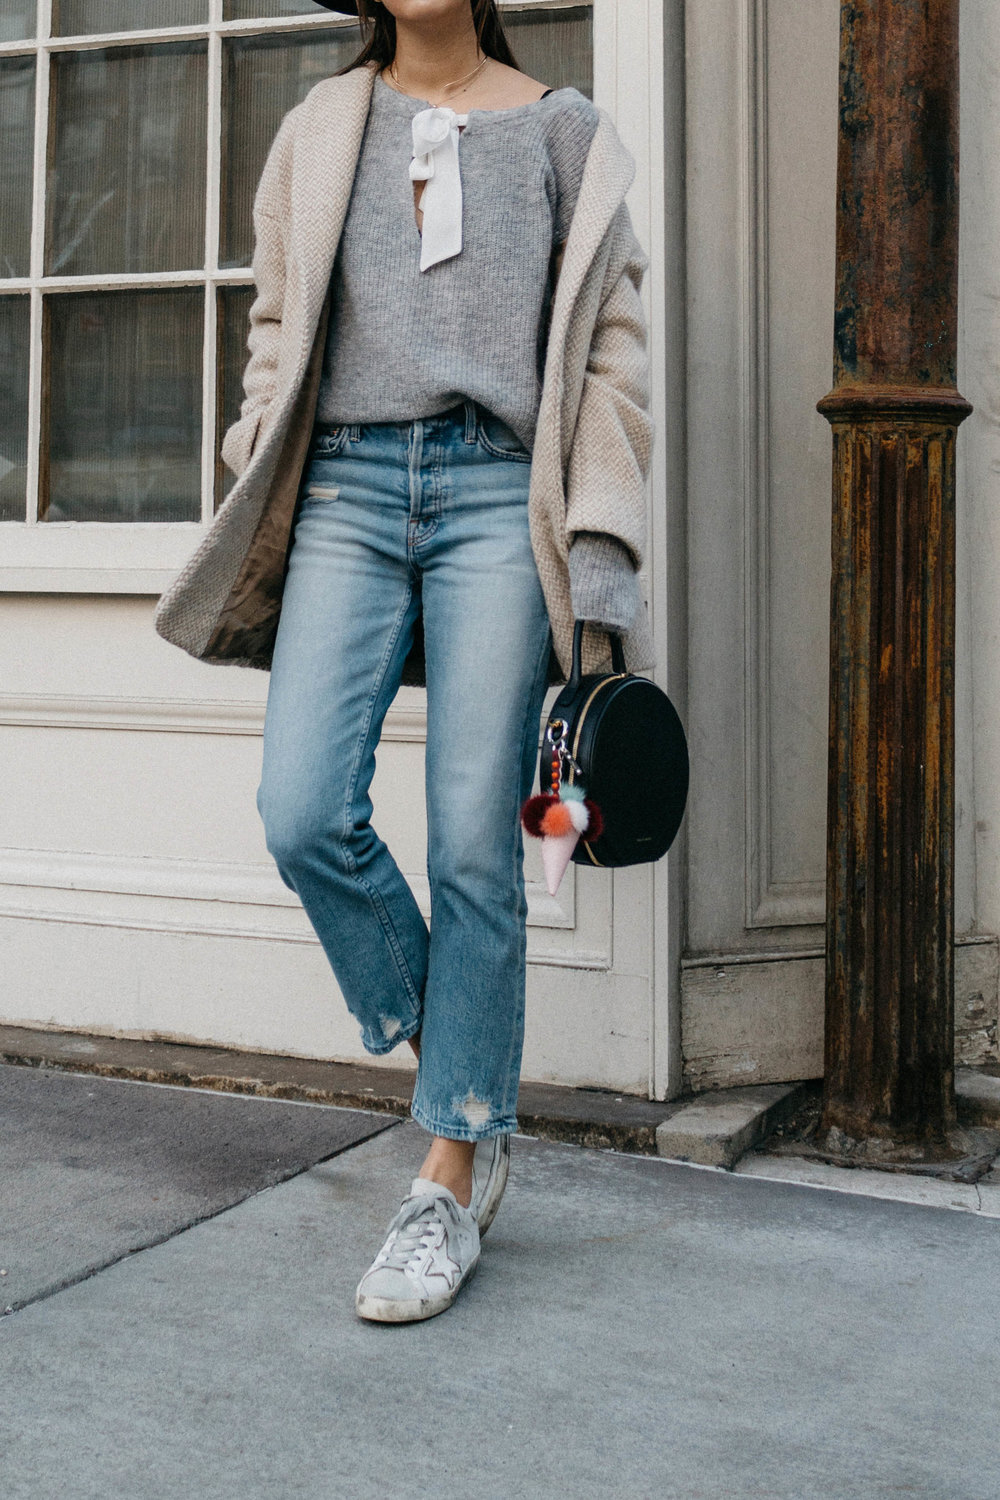 Sézane Coat , Sézane Sweater, Mother Denim,  Golden Goose Sneakers ,  Mansur Gavriel Bag ,  Fendi Keychain ,  Kat Kim Choker ,  Wwake Necklace